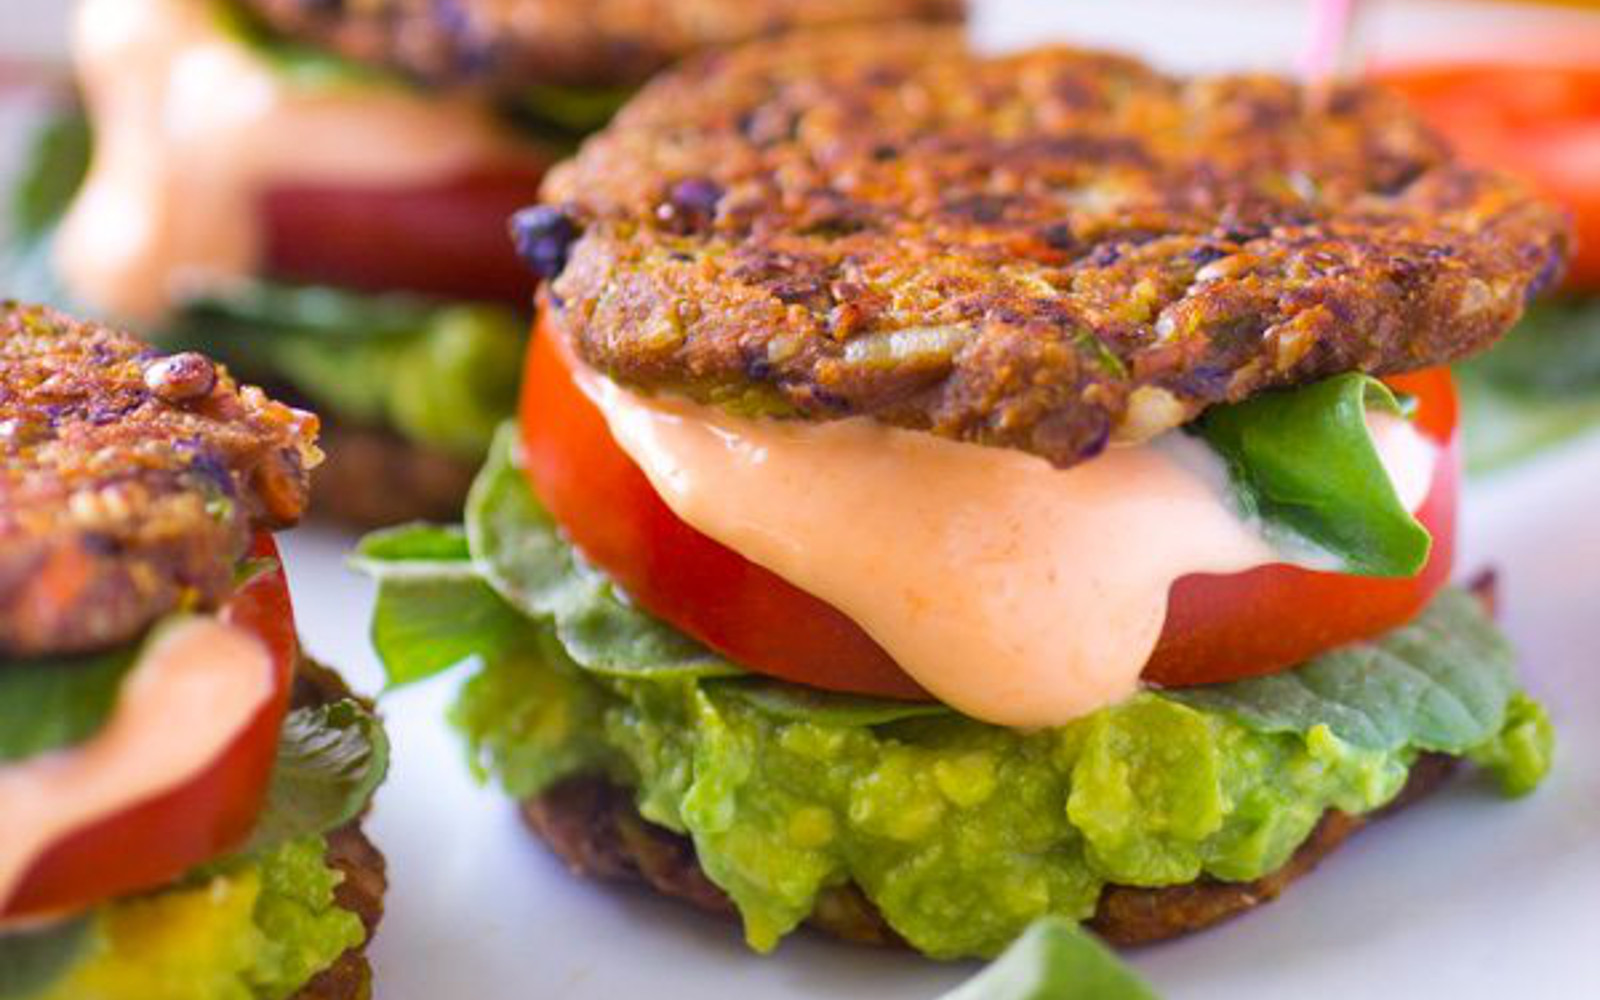 Vegan burgers with carrots and pinto beans